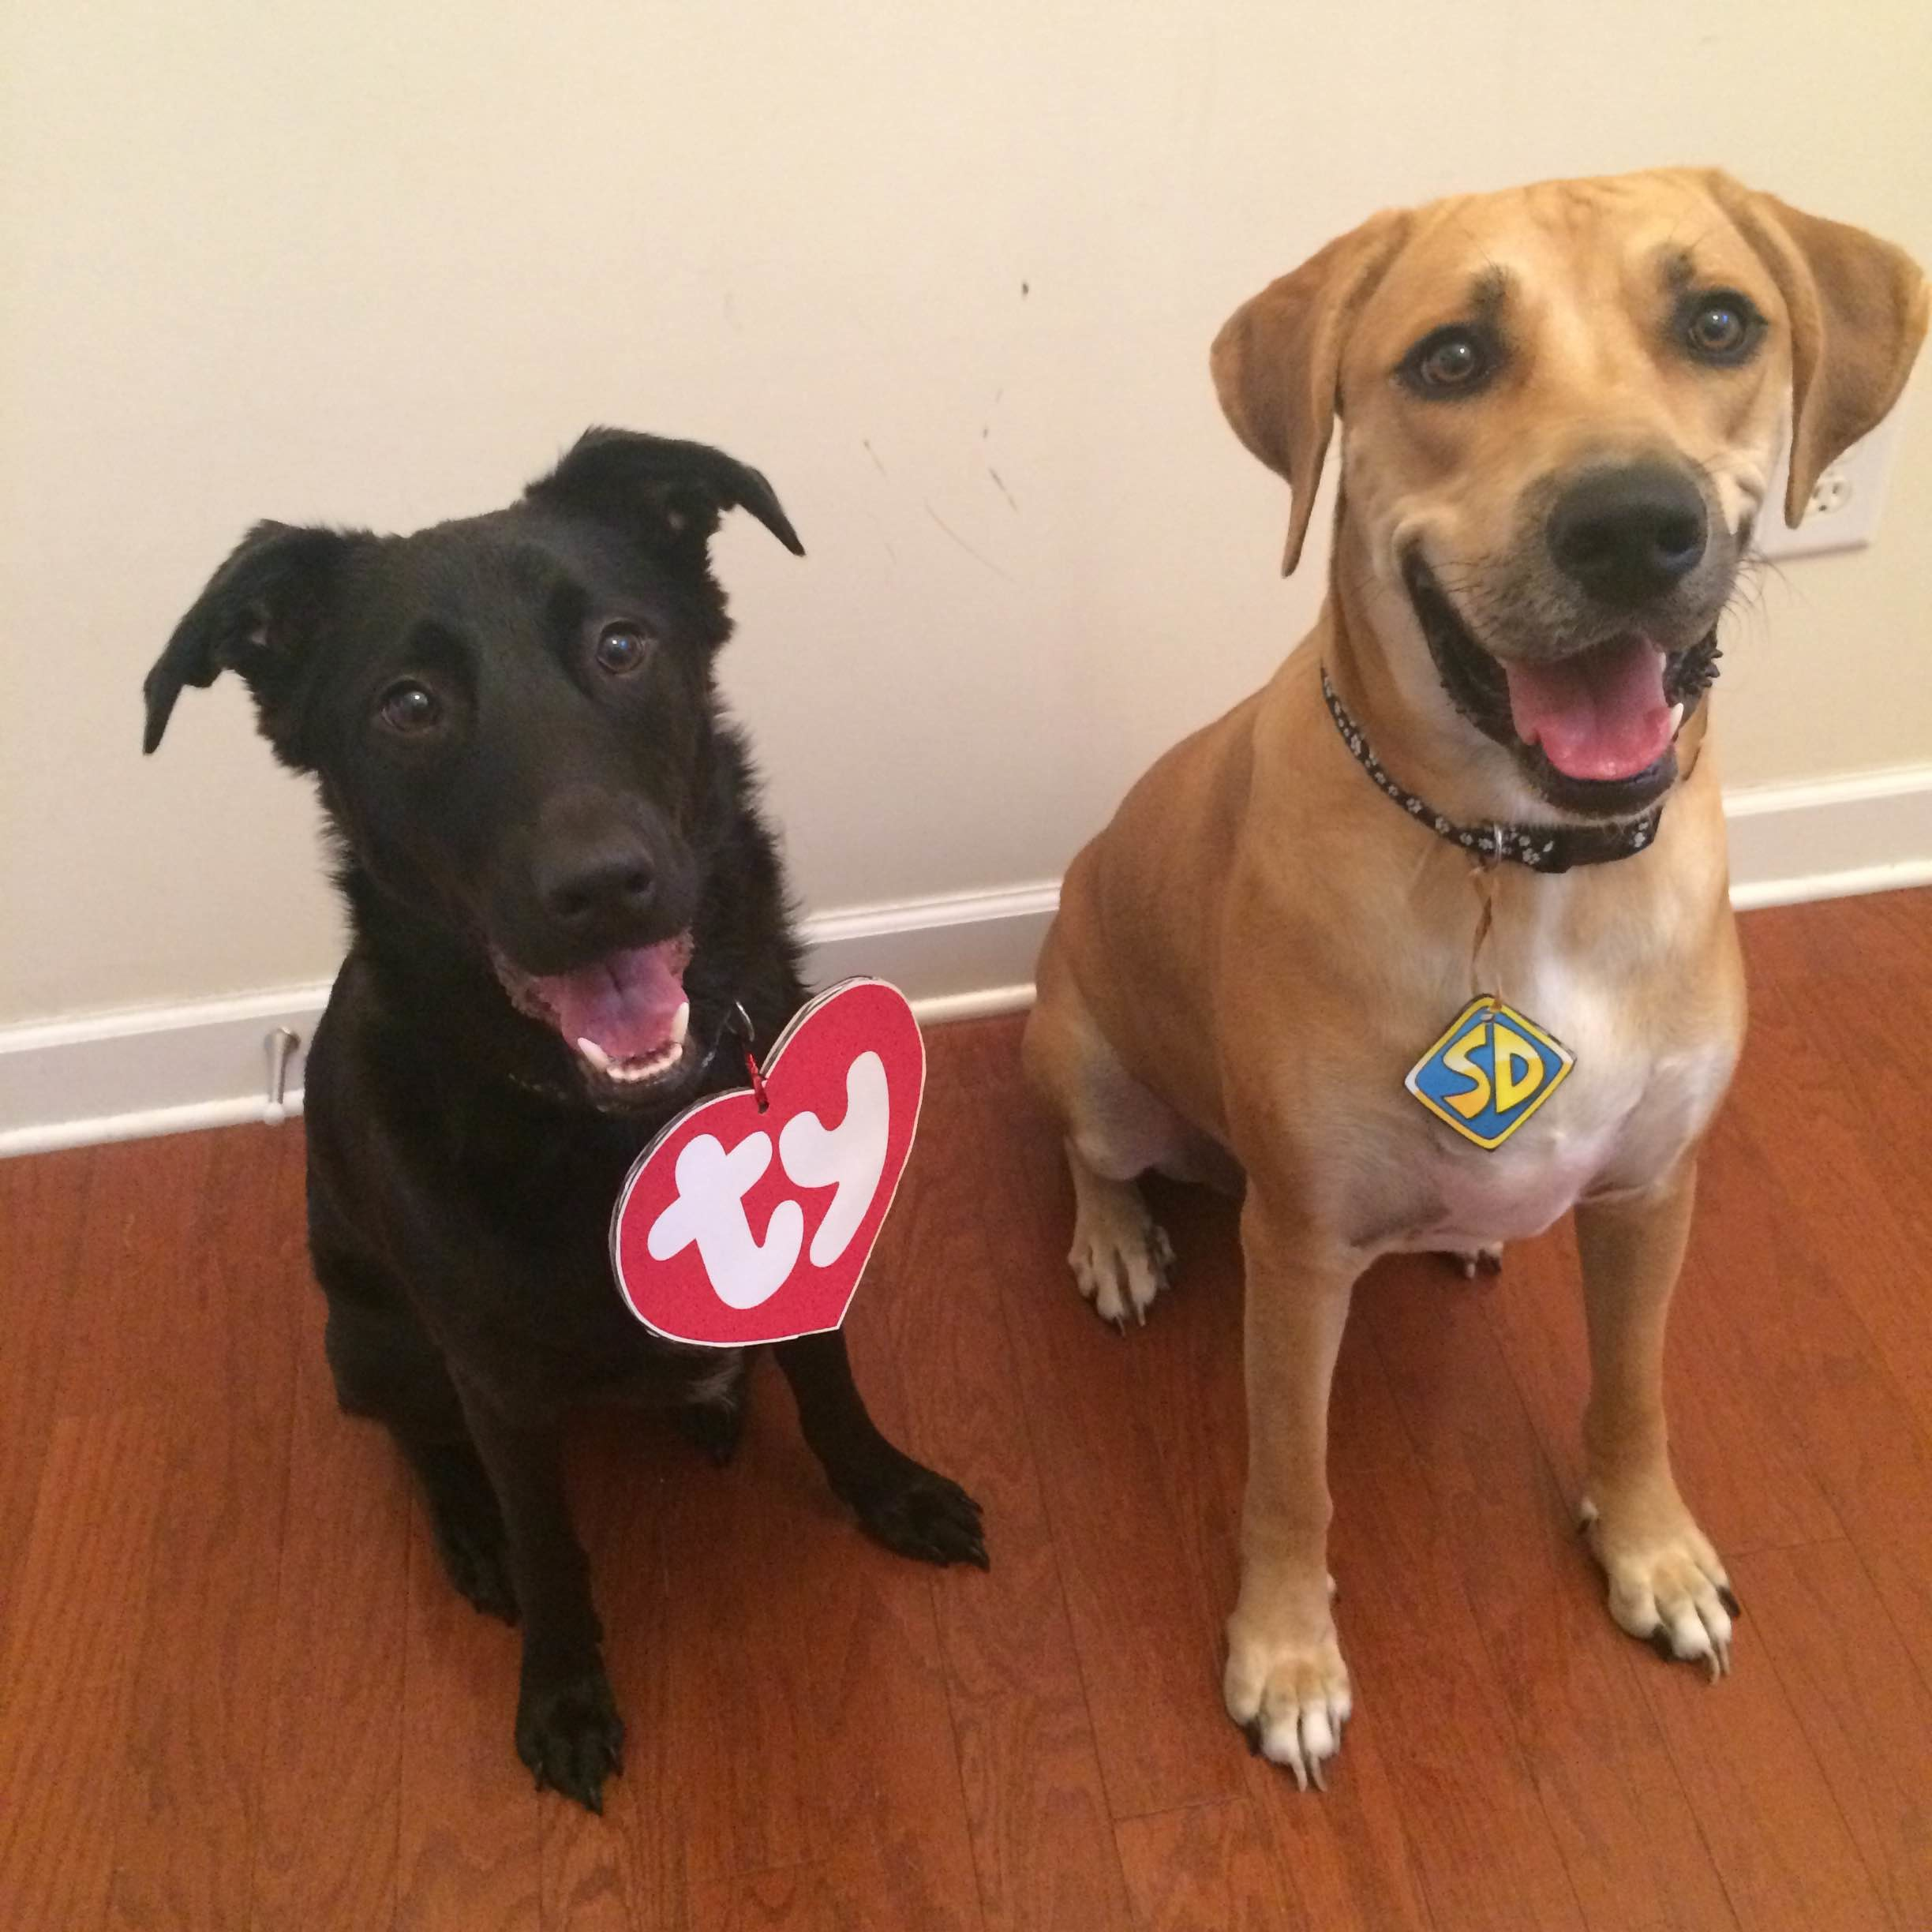 Beanie Baby and Scooby Doo Halloween costumes & 6 DIY Halloween Costumes You Can Make for Your Pet Out of Moving ...